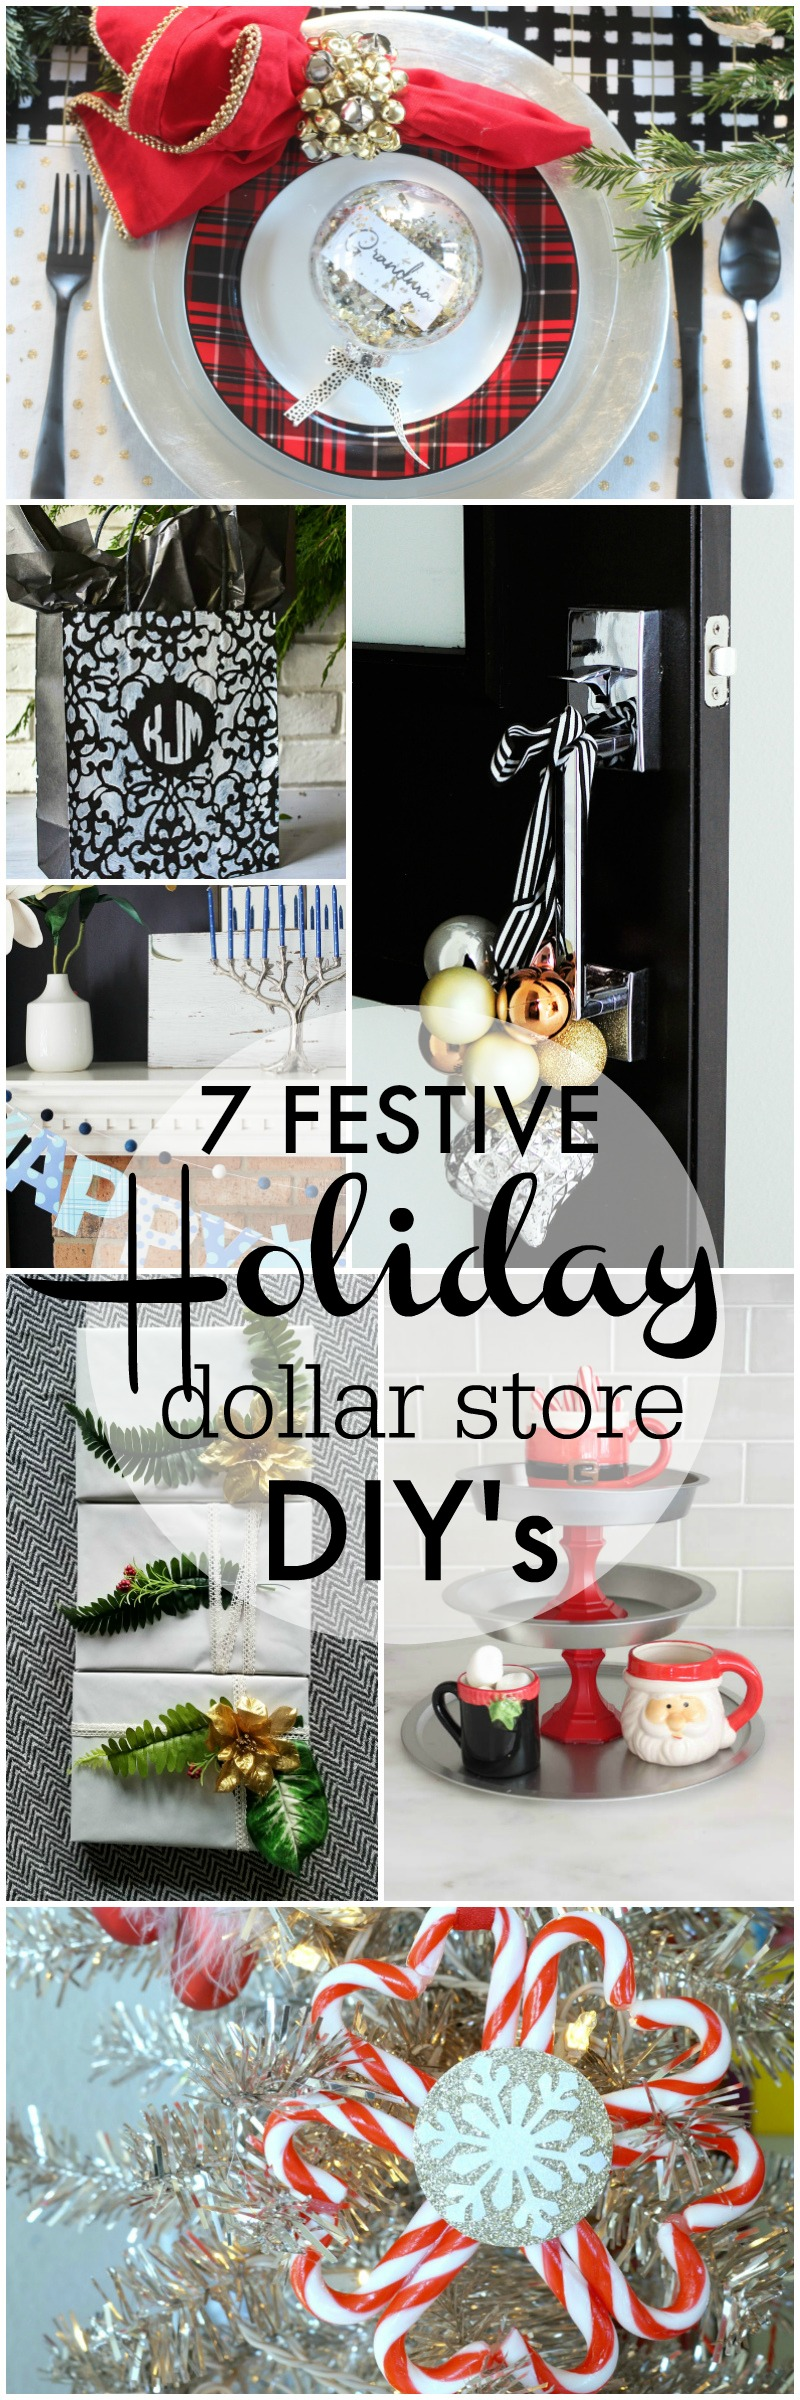 7 Holiday Dollar Store DIY Projects - My Dollar Store DIY Series